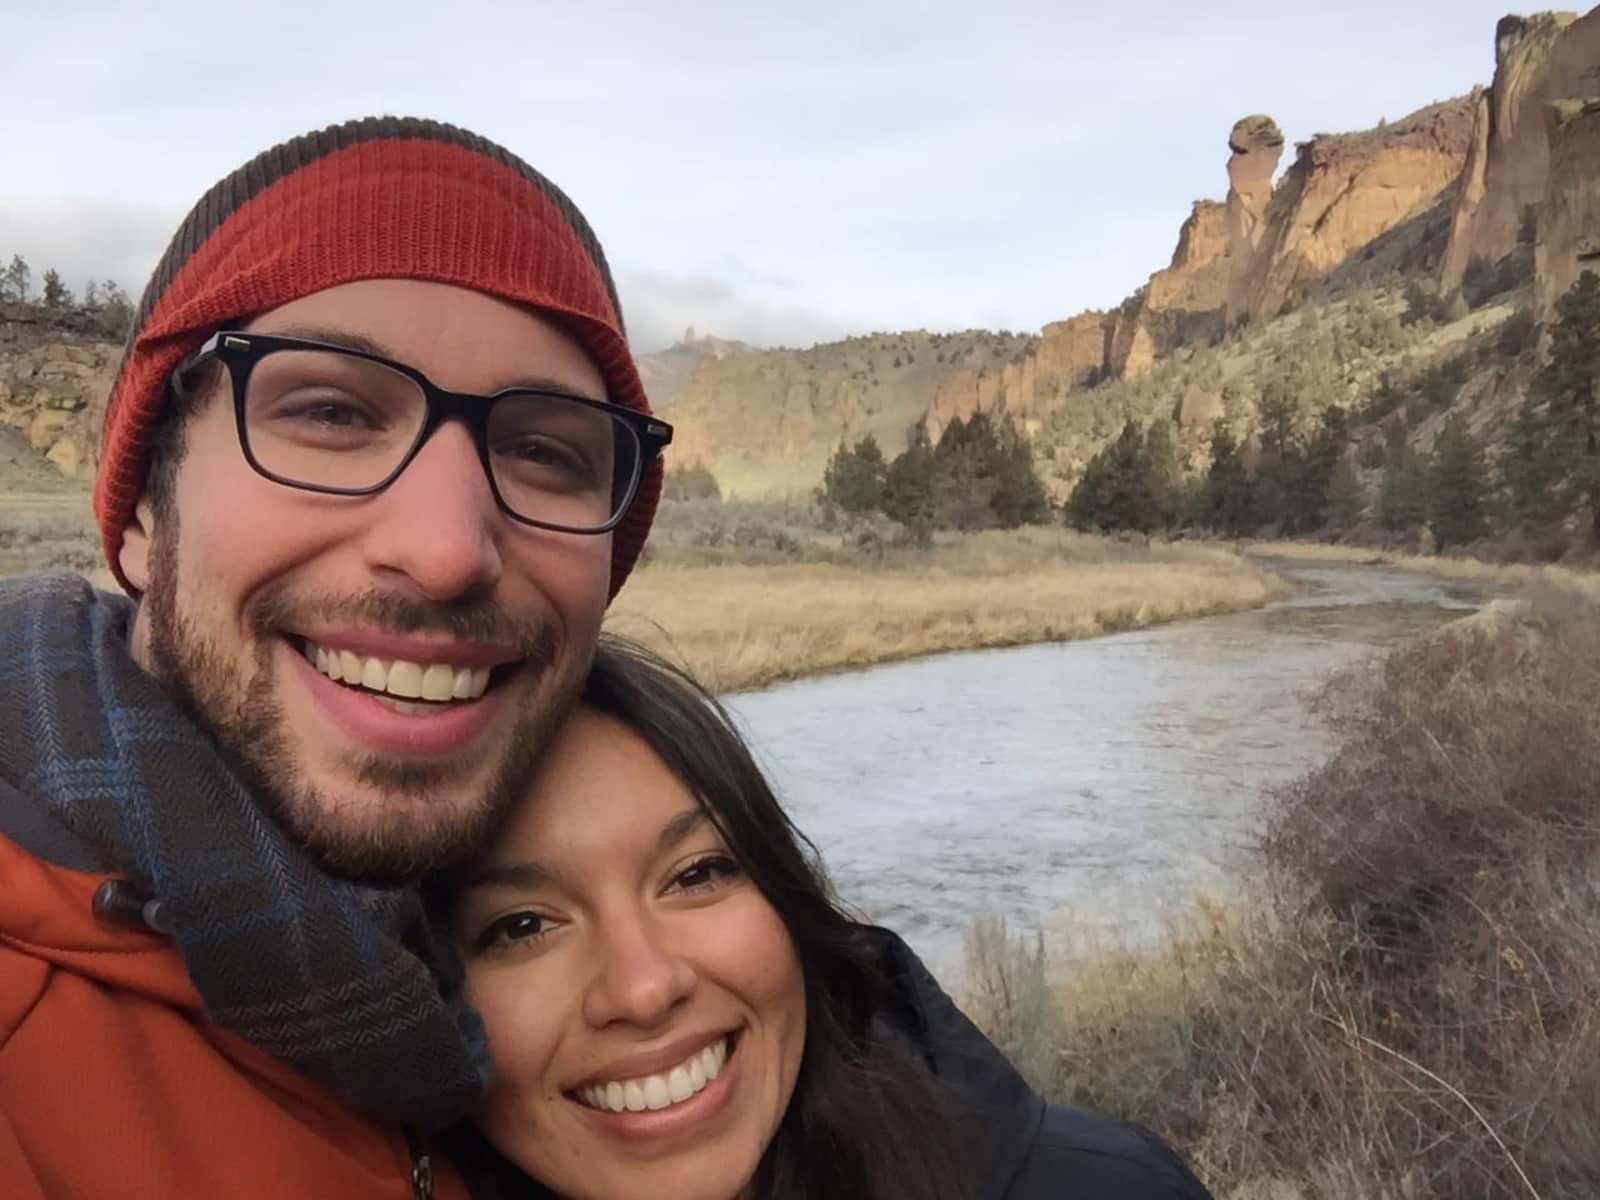 Eric and ericka & Ericka from Bend, Oregon, United States